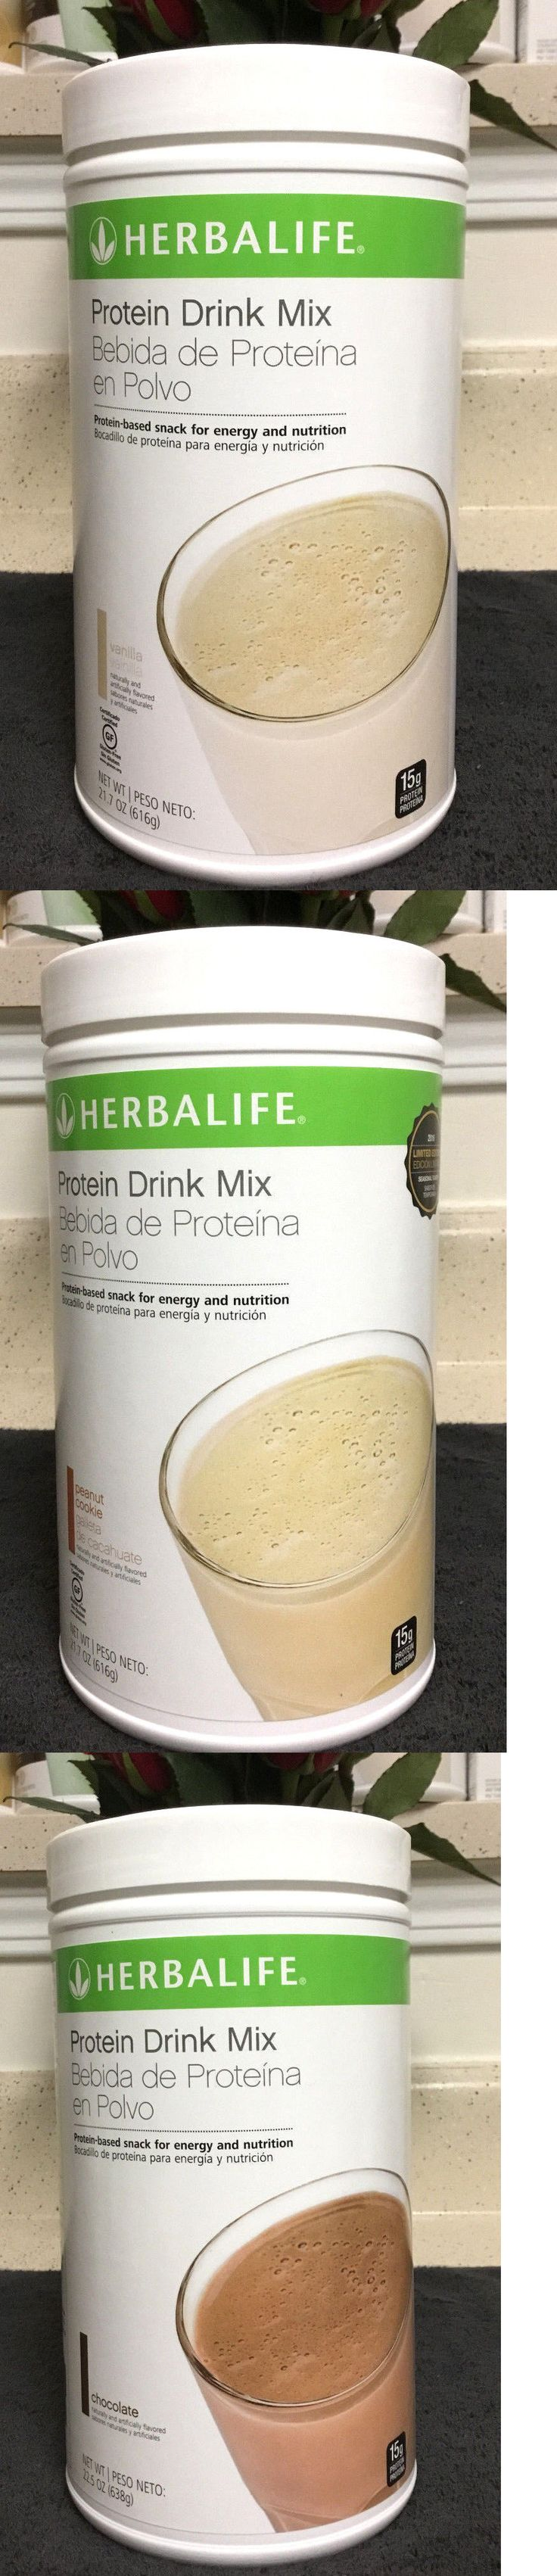 Meal Replacement Drinks: New! 1 Herbalife Protein Drink Mix Meal Replacement Free Shipping!! -> BUY IT NOW ONLY: $44.99 on eBay!